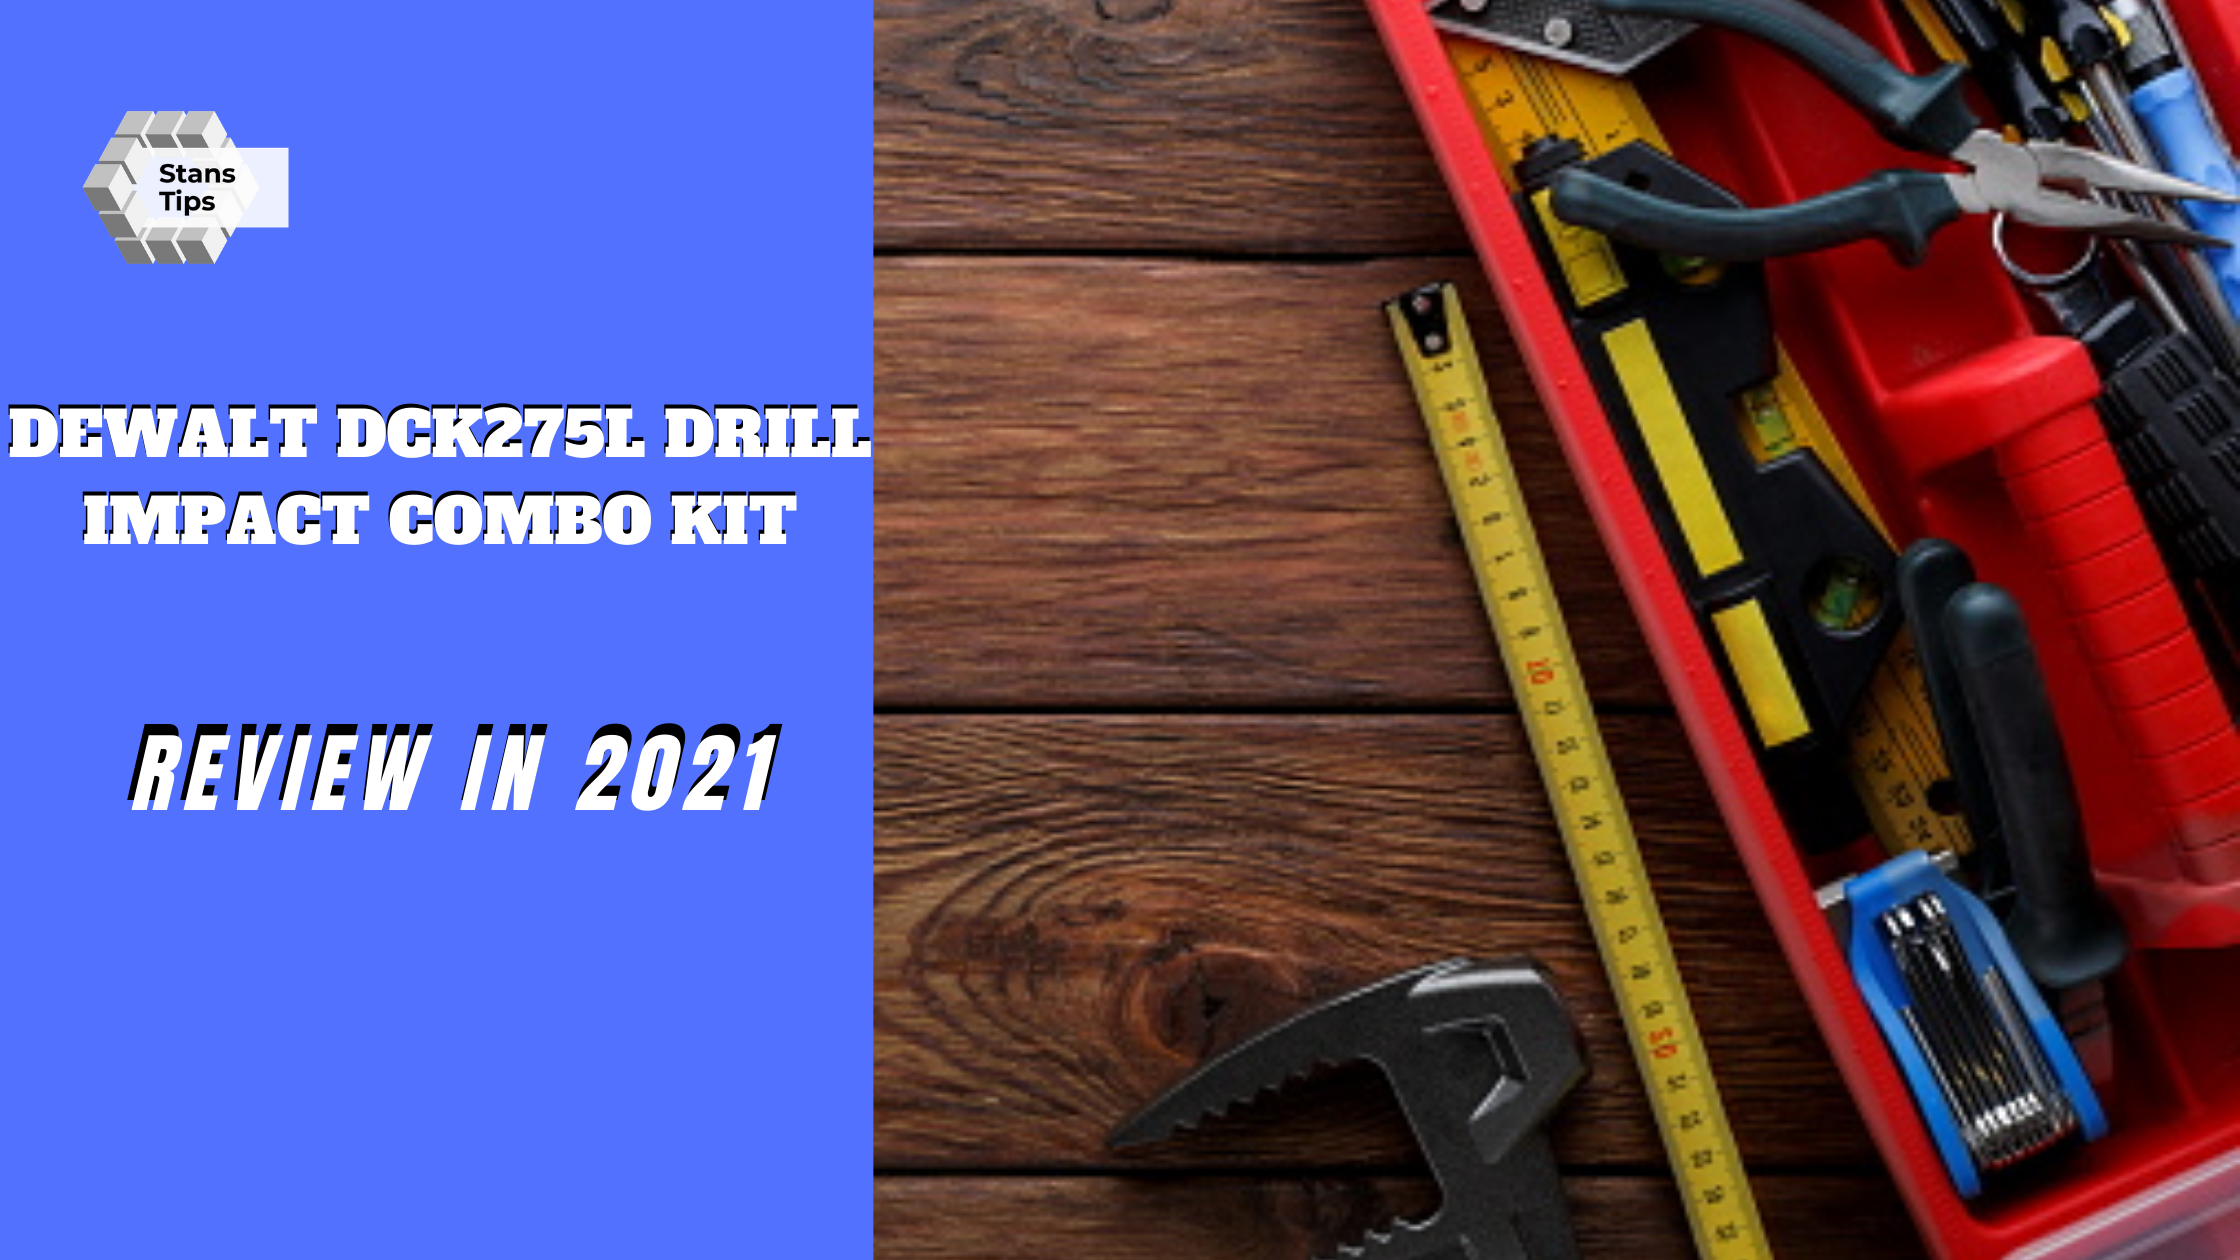 Dewalt dck275l drill impact combo kit 2021 review